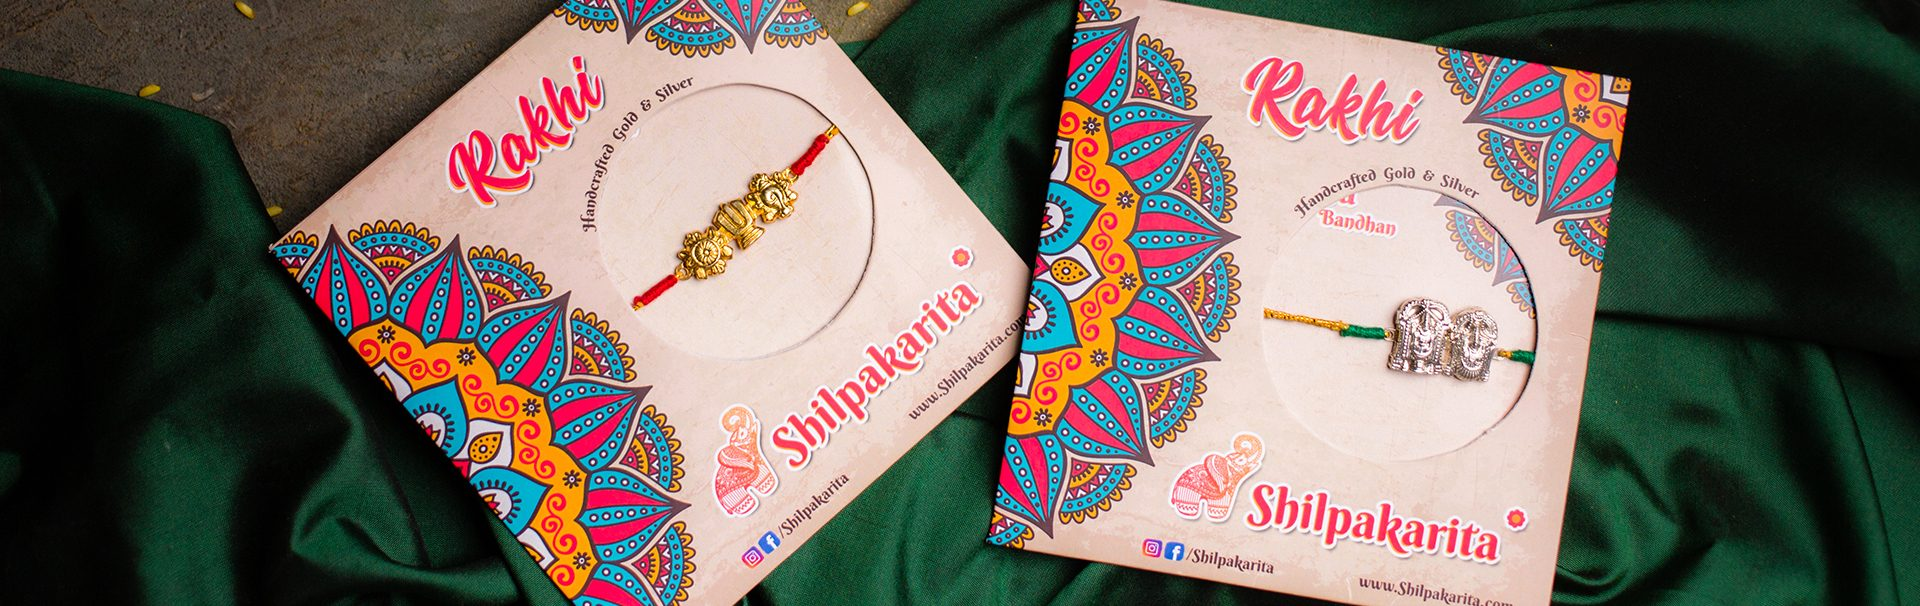 Ishtadevata Silver and Gold coated silver rakhi's